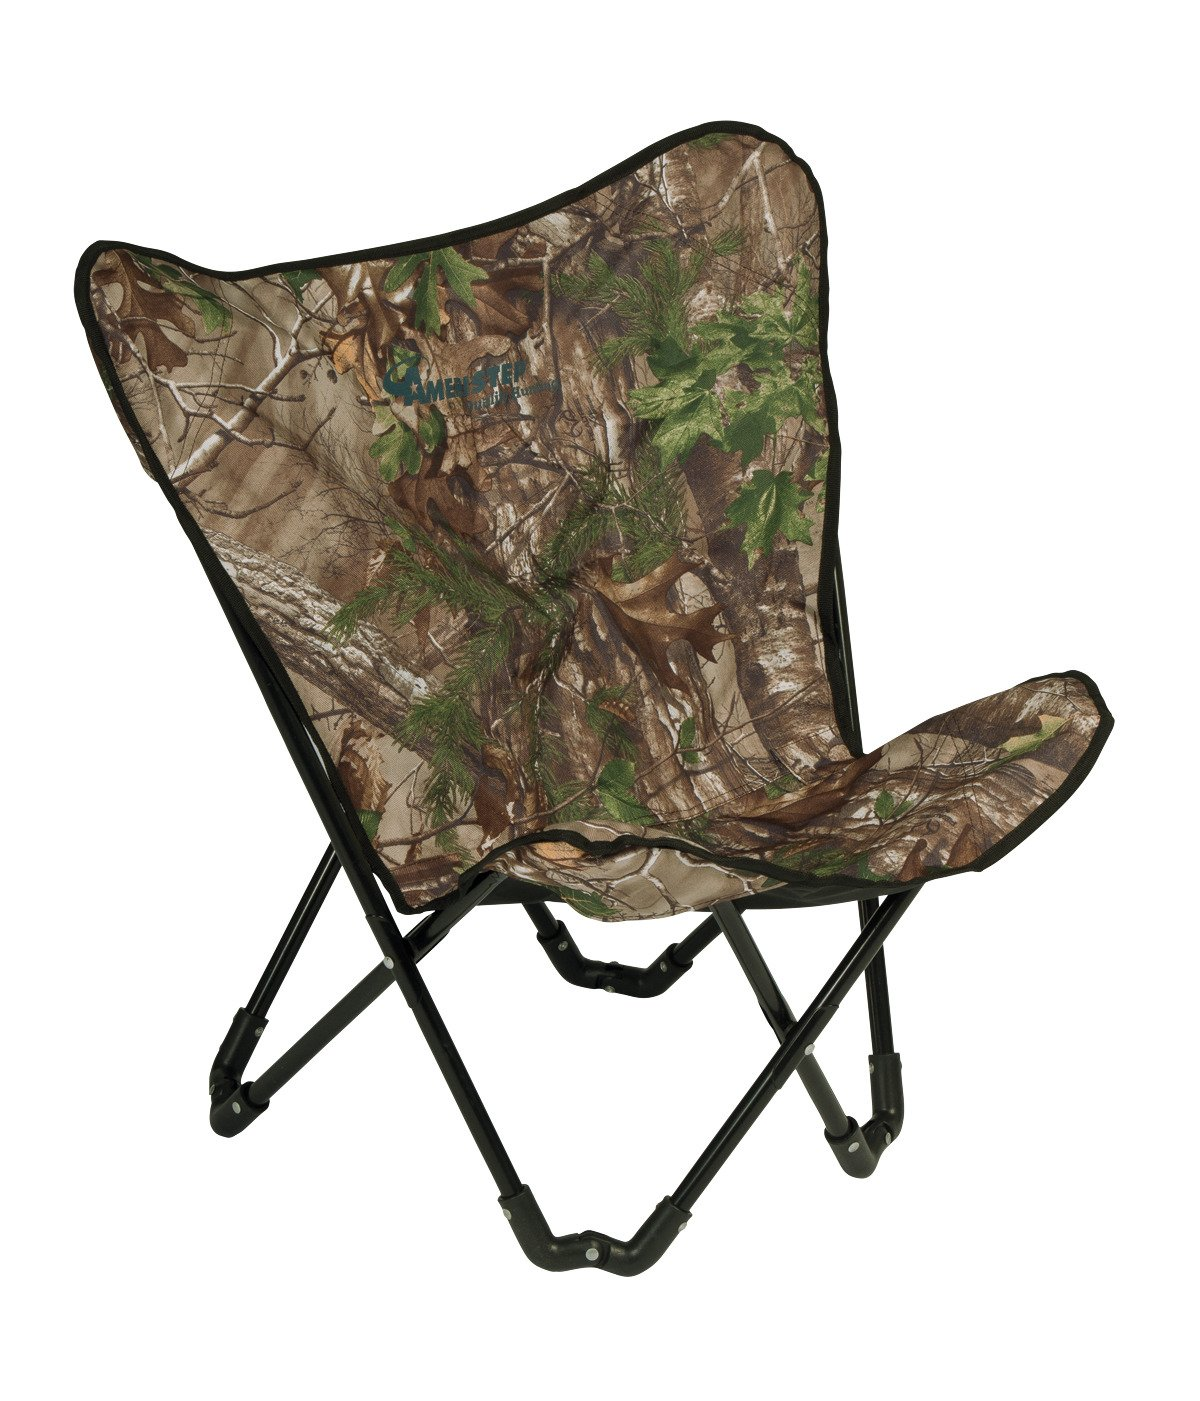 summit trophy chair review heavy duty kitchen chairs stool hunting seats blind ameristep camo turkey stopper